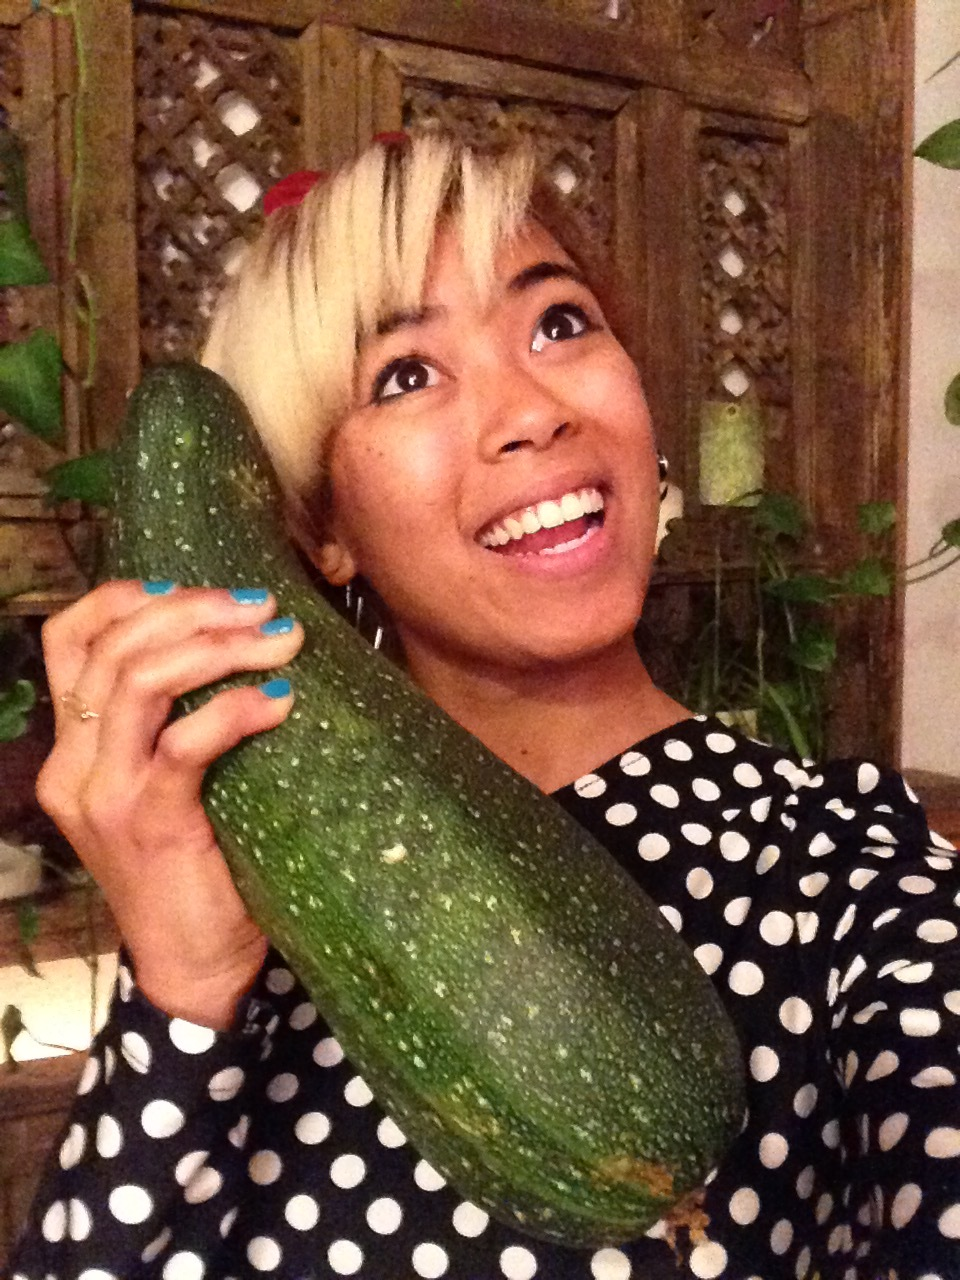 Getting a call from a giant organic zucchini #winning @TheHashtagHERO